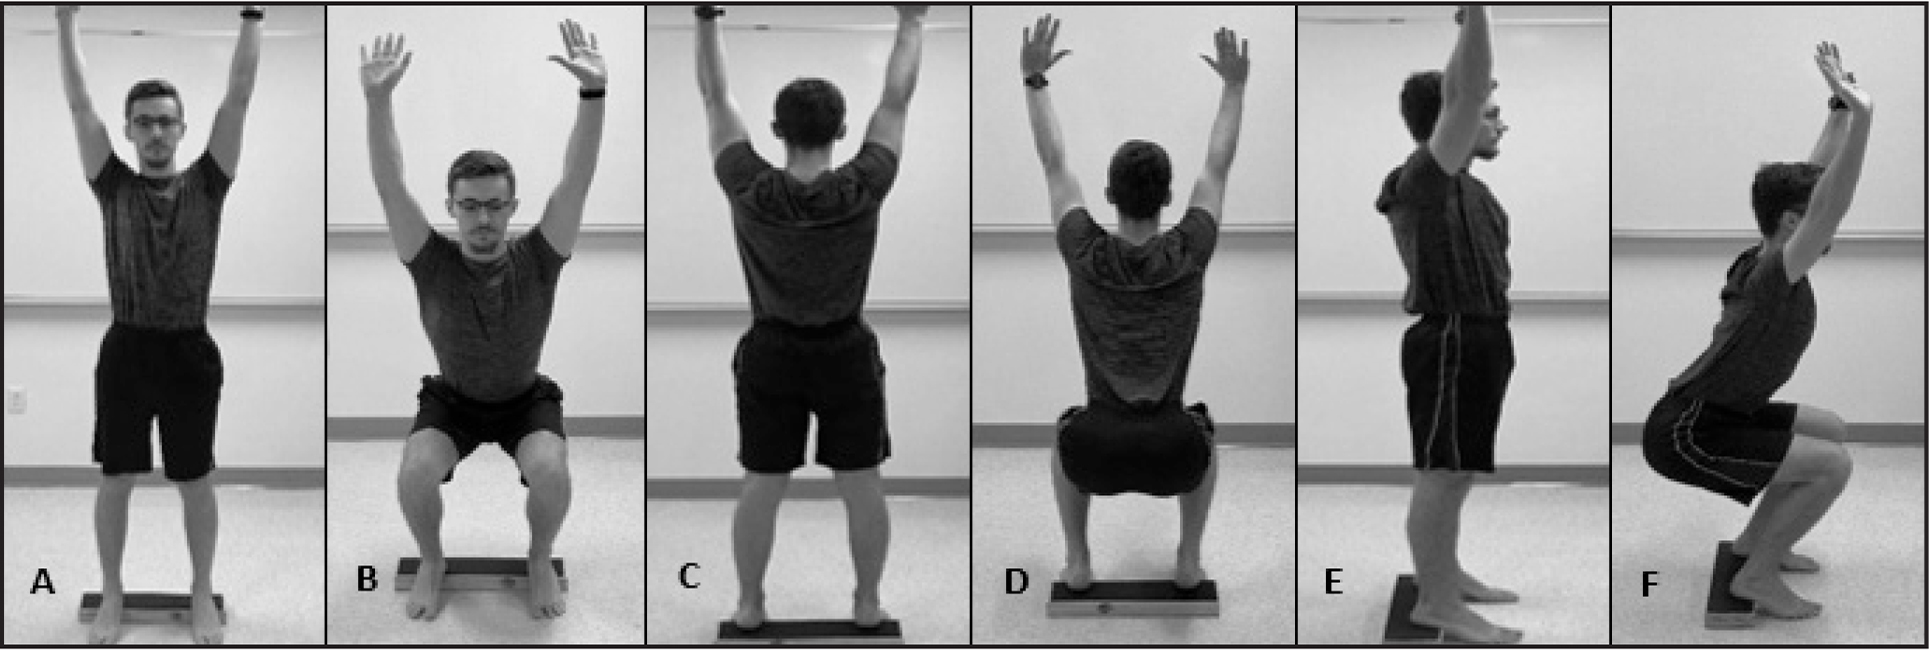 2-Leg Squat with Heel Lift sub-test: (A) start position (front view); (B) end position (front view); (C) start position (back view); (D) end position (back view); (E) start position (side view); and (F) end position (side view).